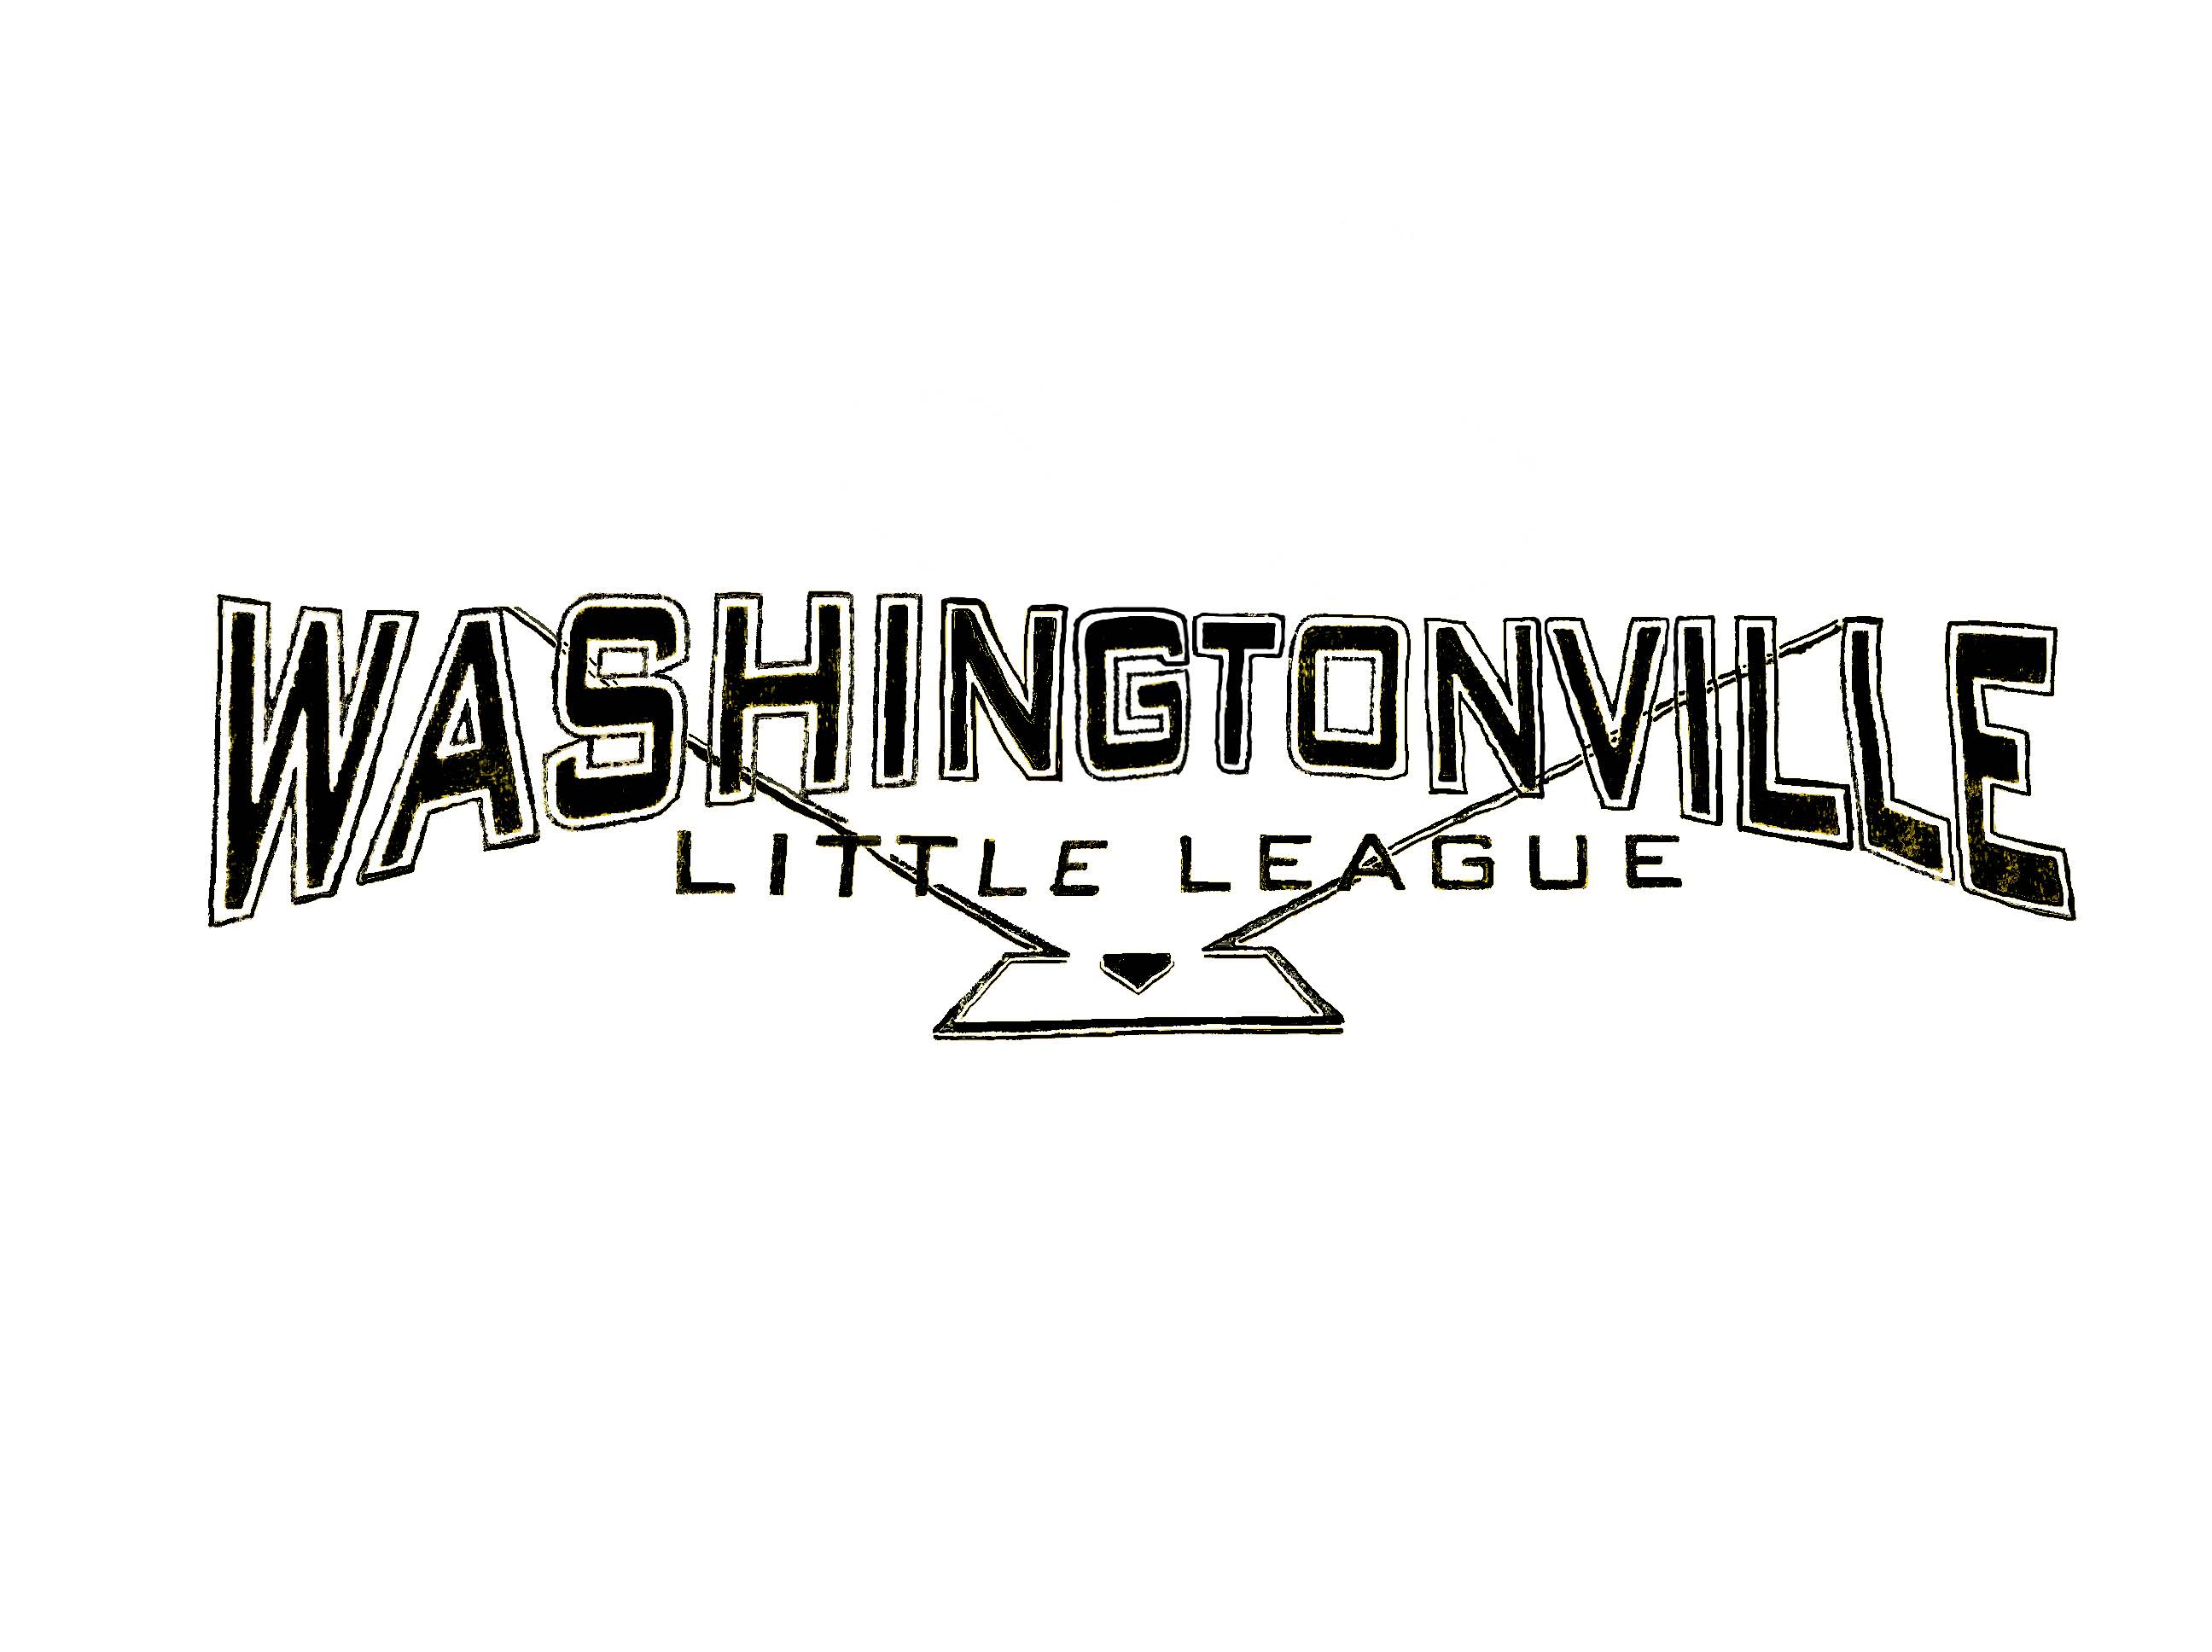 Washingtonville Little League, Baseball/Softball, Run, Field